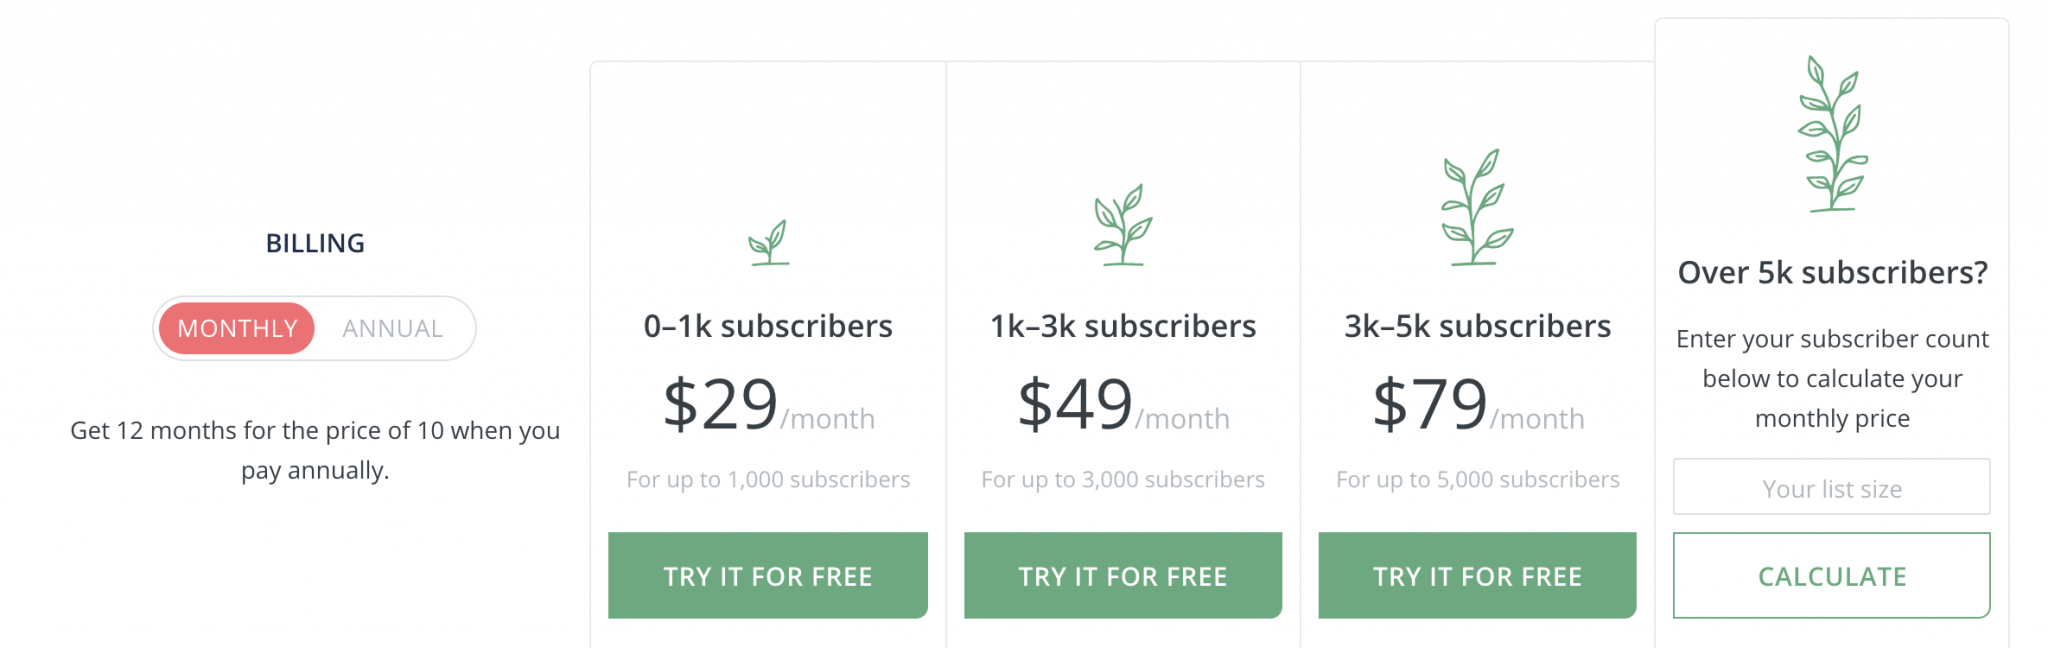 Email Marketing Convertkit Offers May 2020